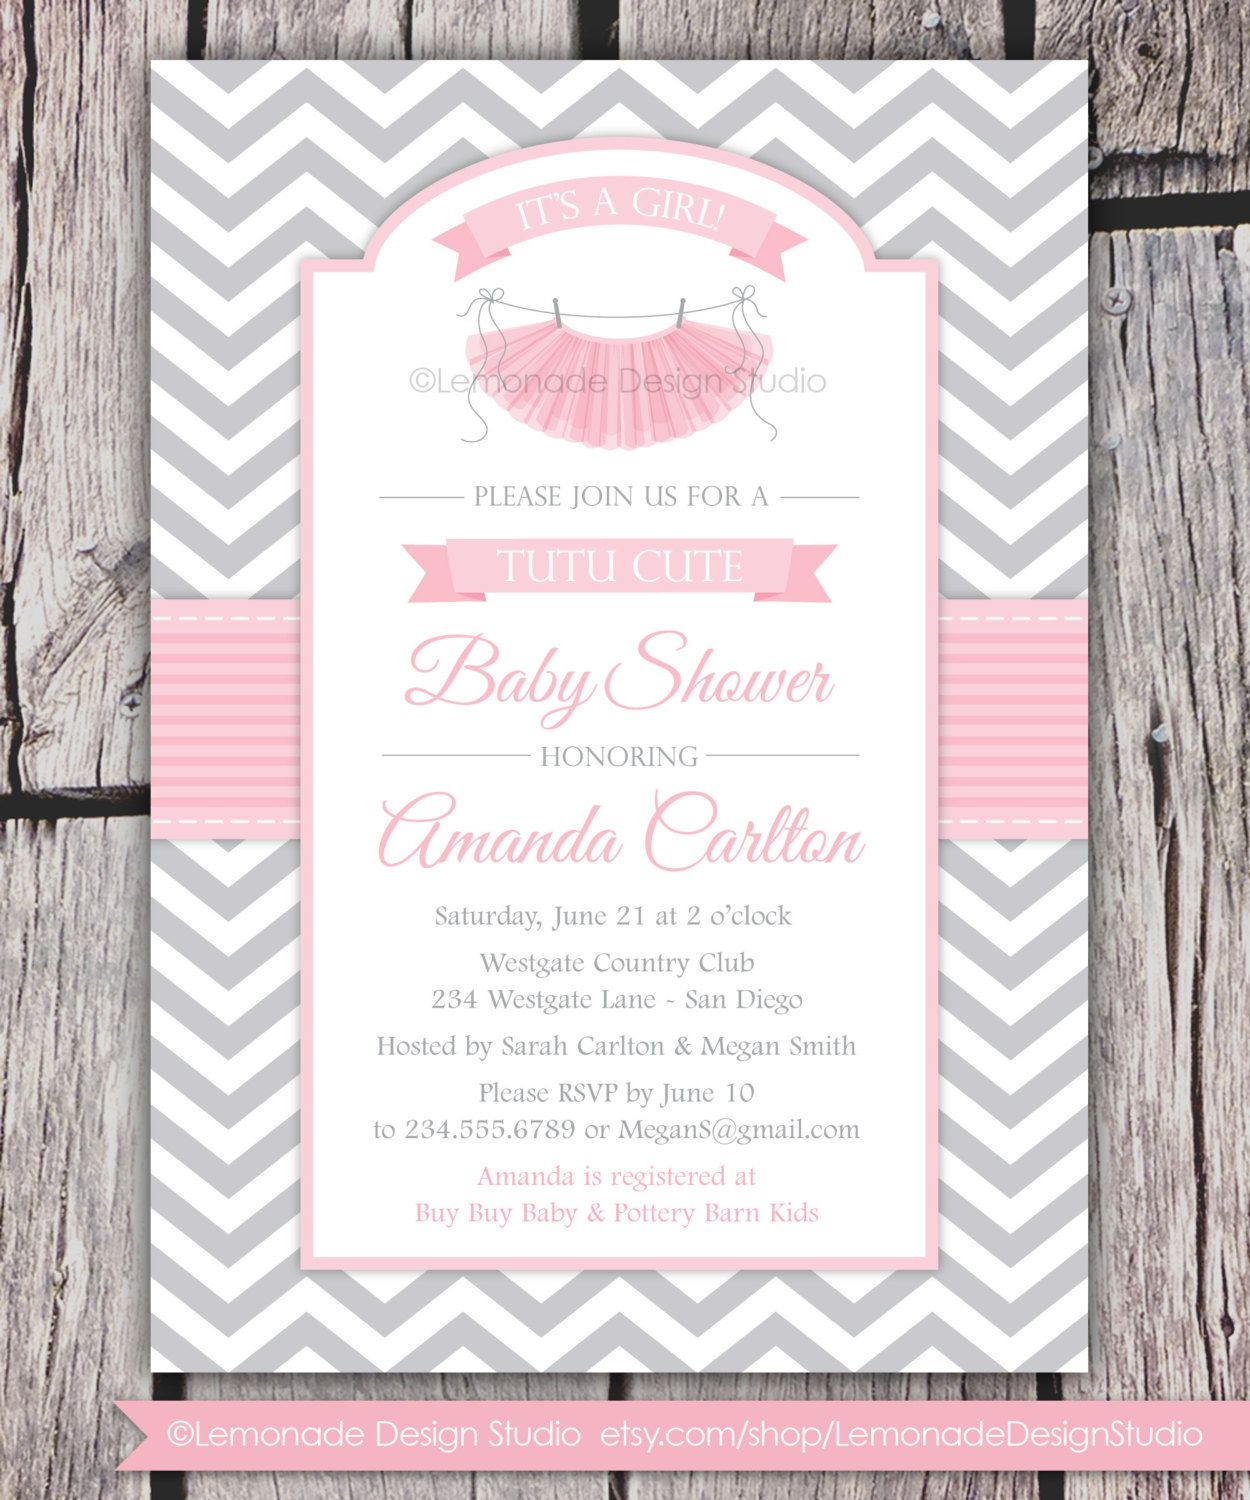 Tutu Cute Baby Shower Invitation   Chevron   Pink Grey   Girl Baby Shower    ANY Colors   Tutu Party   Modern Shower   Pritable DIY Or Ecard